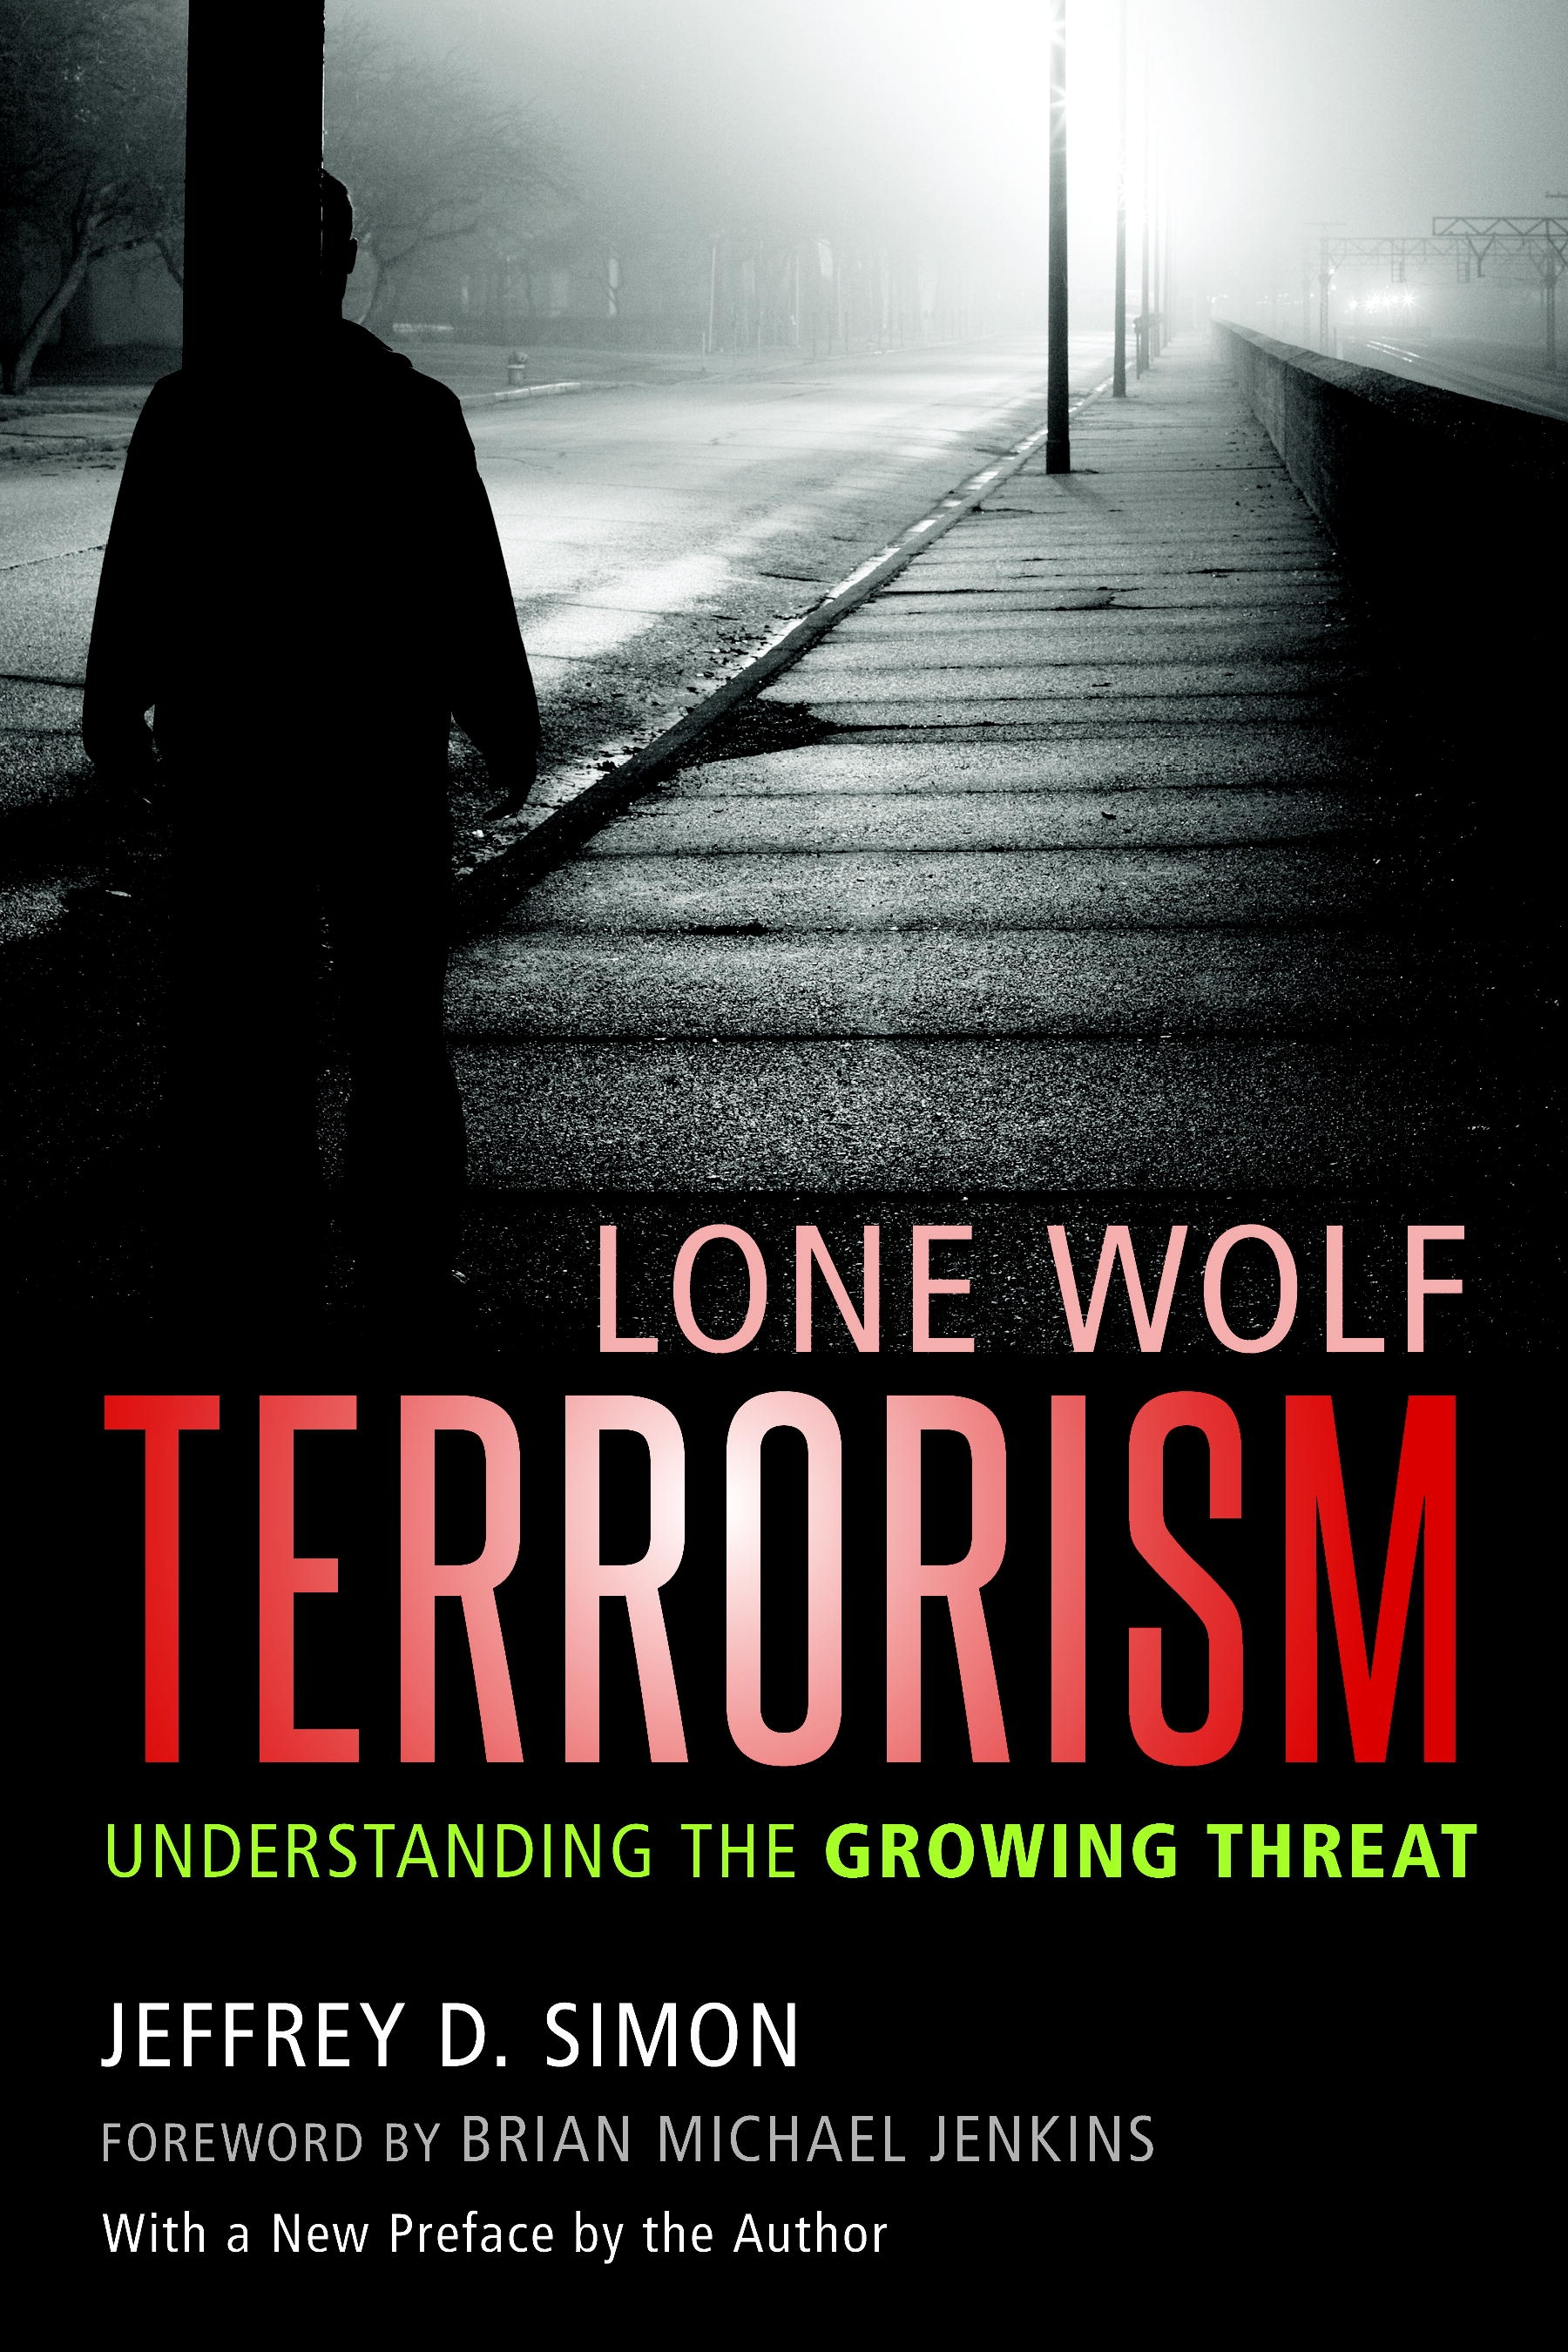 lone wolf terrorism Liberman: there is no such thing as 'lone wolf terrorism' defense minister vows to punish anyone who cooperated with terrorist who carried out ramming attack in samaria contact editor elad benari, canada, 16/03/18 20:16 share avigdor liberman yonatan sindel/flash 90 defense minister avigdor liberman.